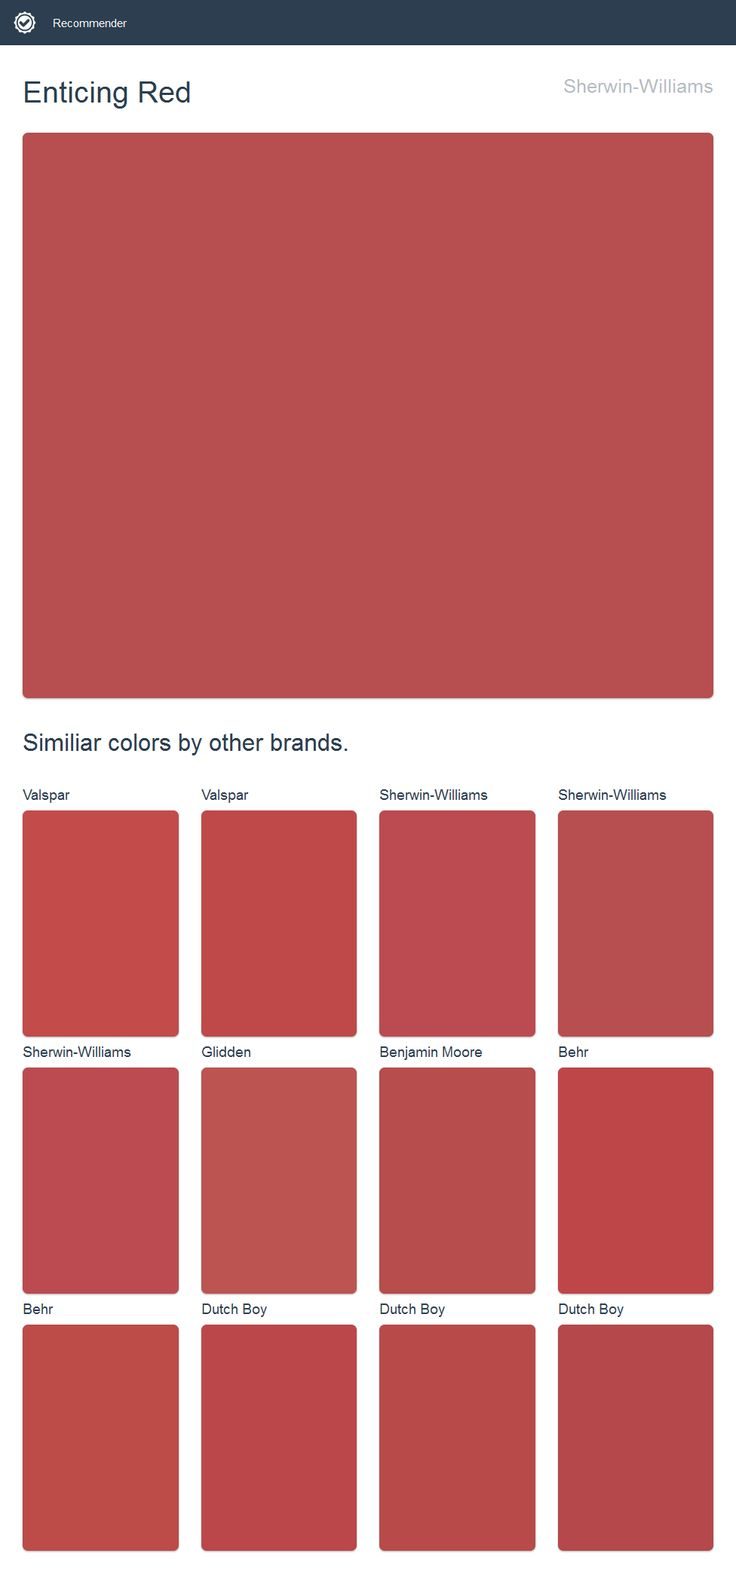 Enticing Red, Sherwin Williams.